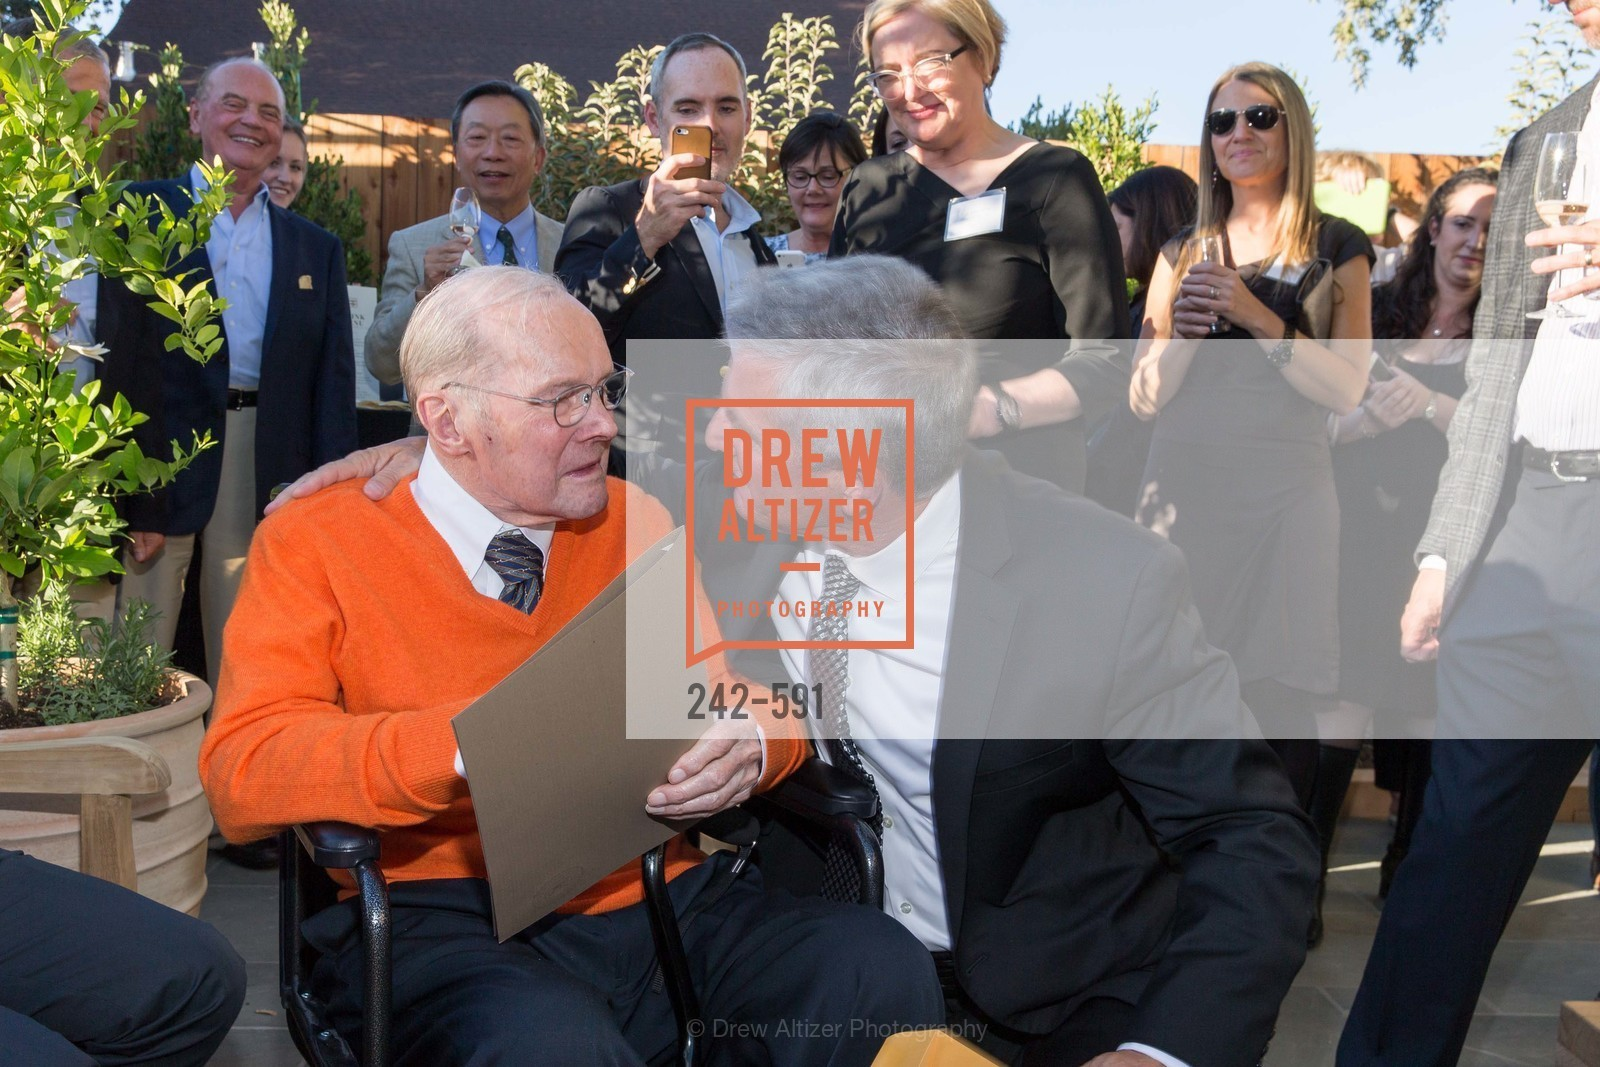 Chuck Williams, Tom Rouse, CHUCK WILLIAMS Birthday Celebration, US, October 3rd, 2014,Drew Altizer, Drew Altizer Photography, full-service agency, private events, San Francisco photographer, photographer california